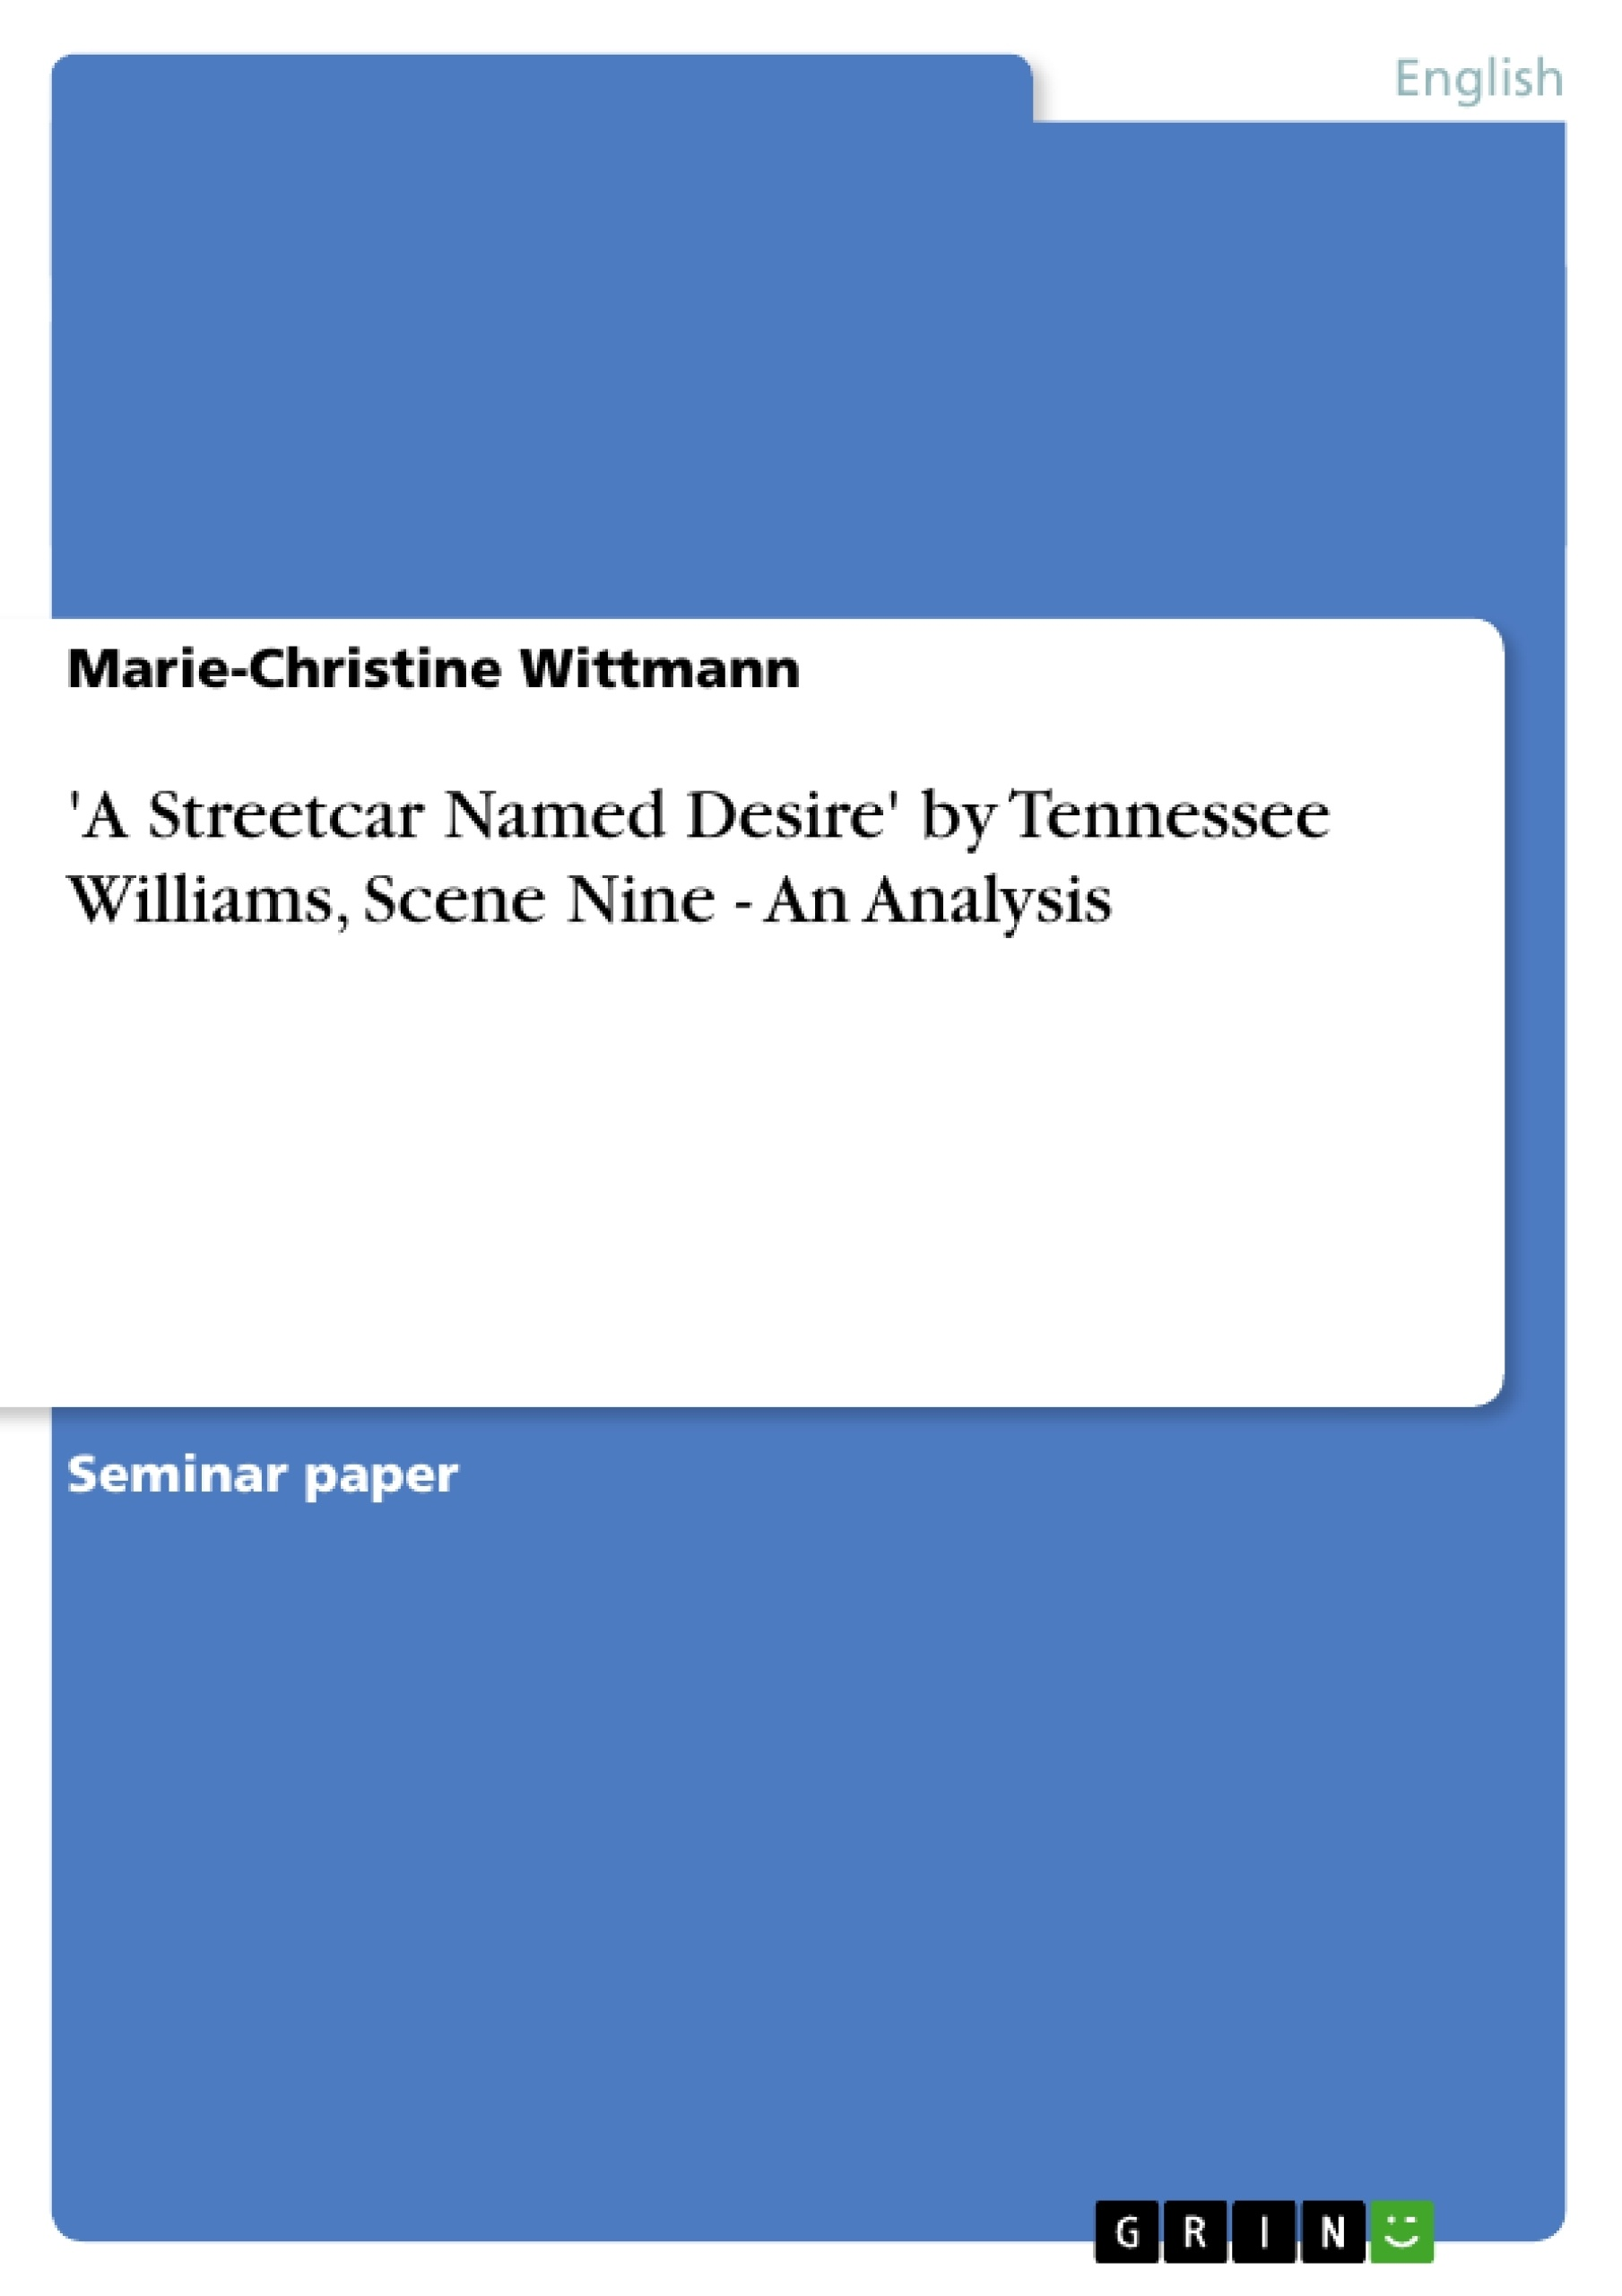 critical essay tennessee williams By tennessee williams critical sites about a streetcar named desire the author of this essay has an ma in english literature, and is a college english instuctor.